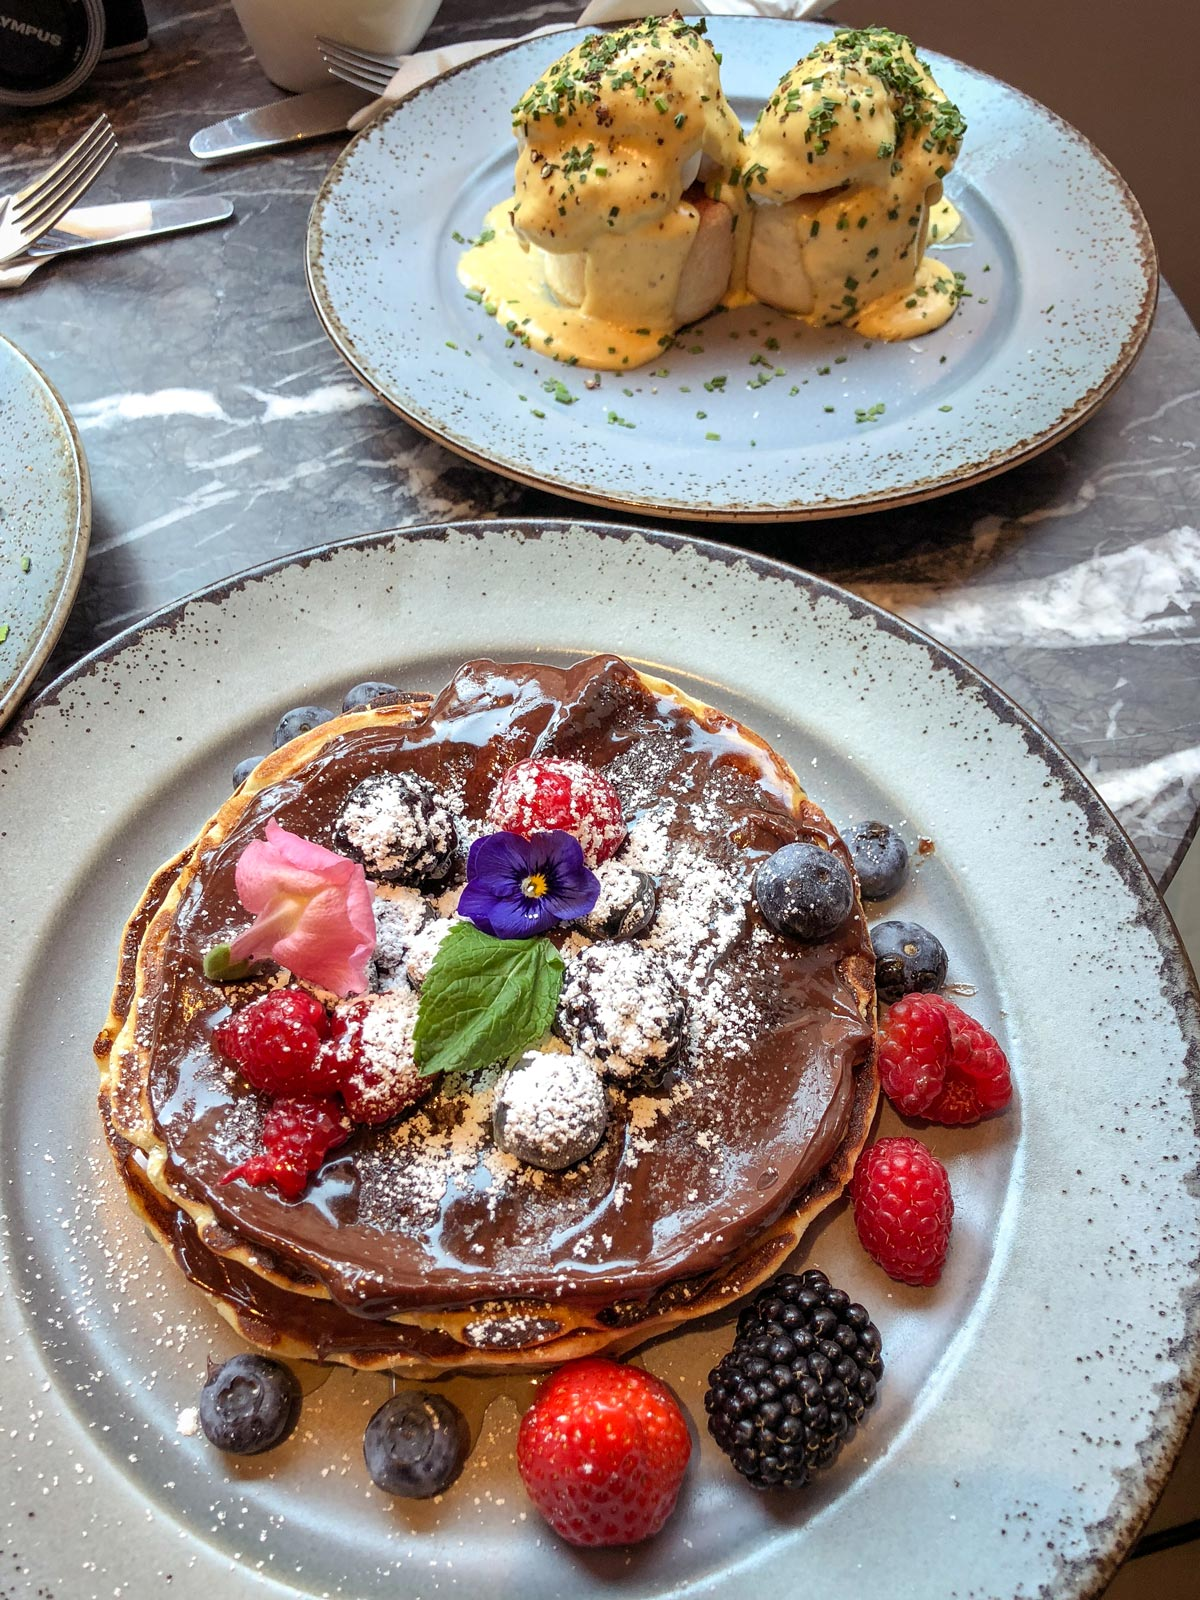 39 Steps Coffee Haus Soho. Chocolate Pancakes London. Brunch in London